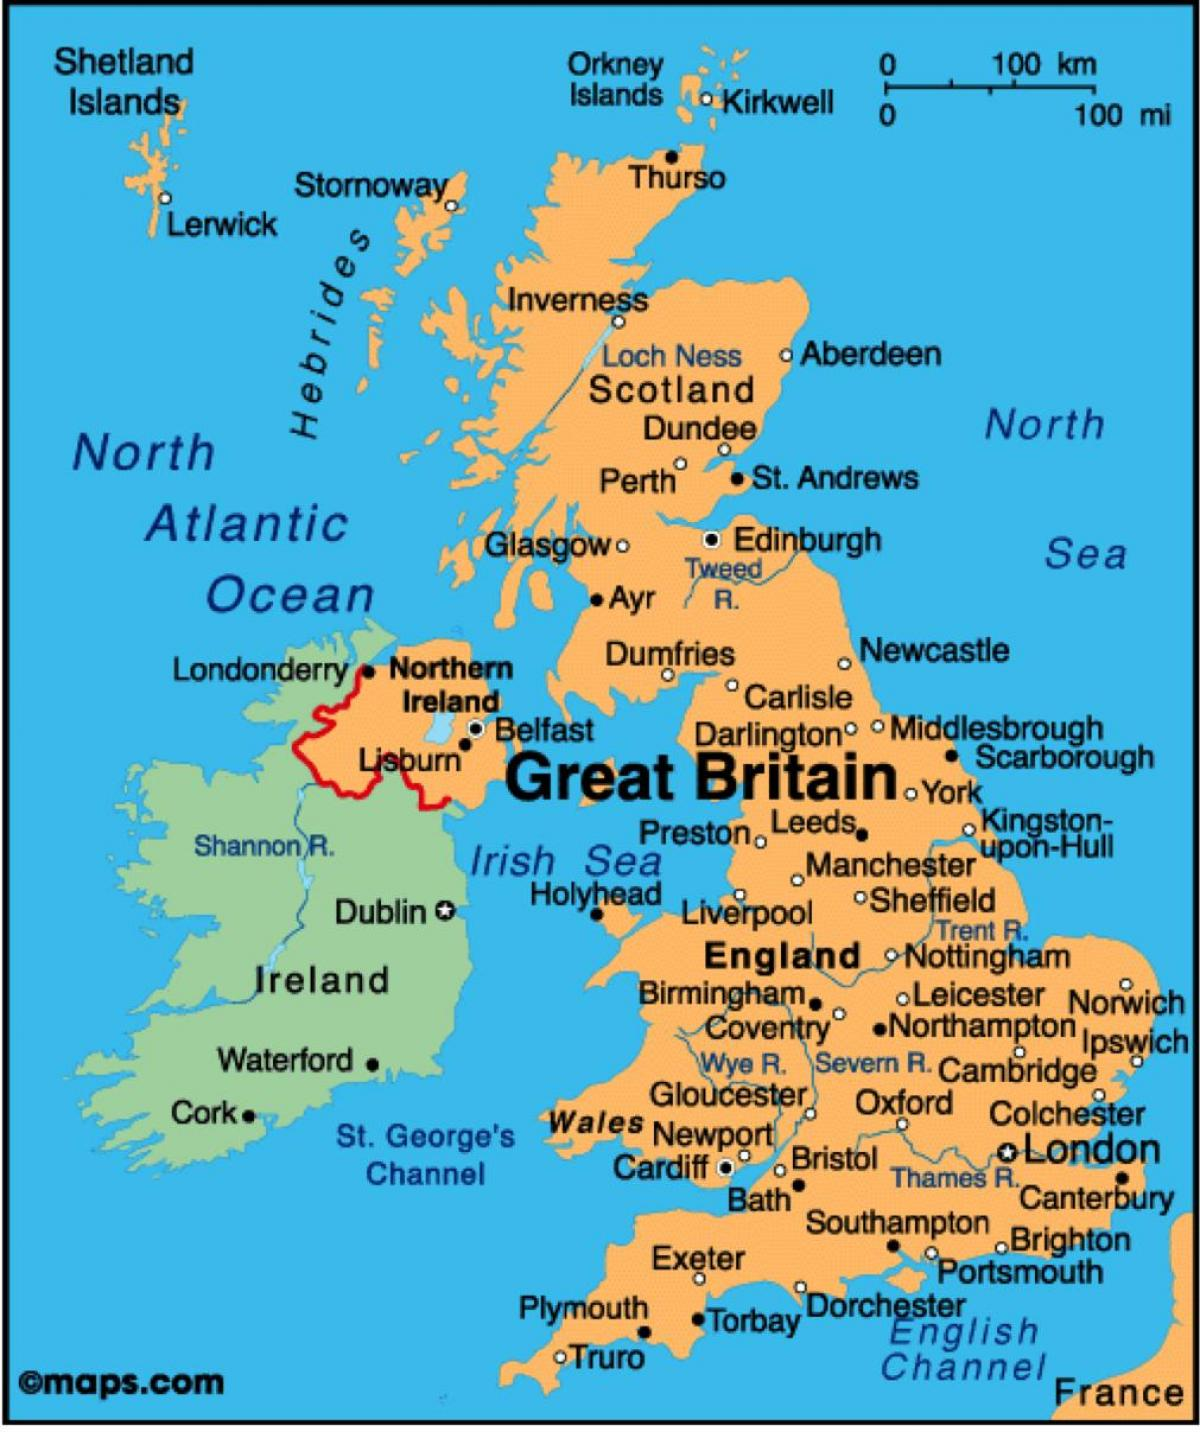 show me a map of the UK